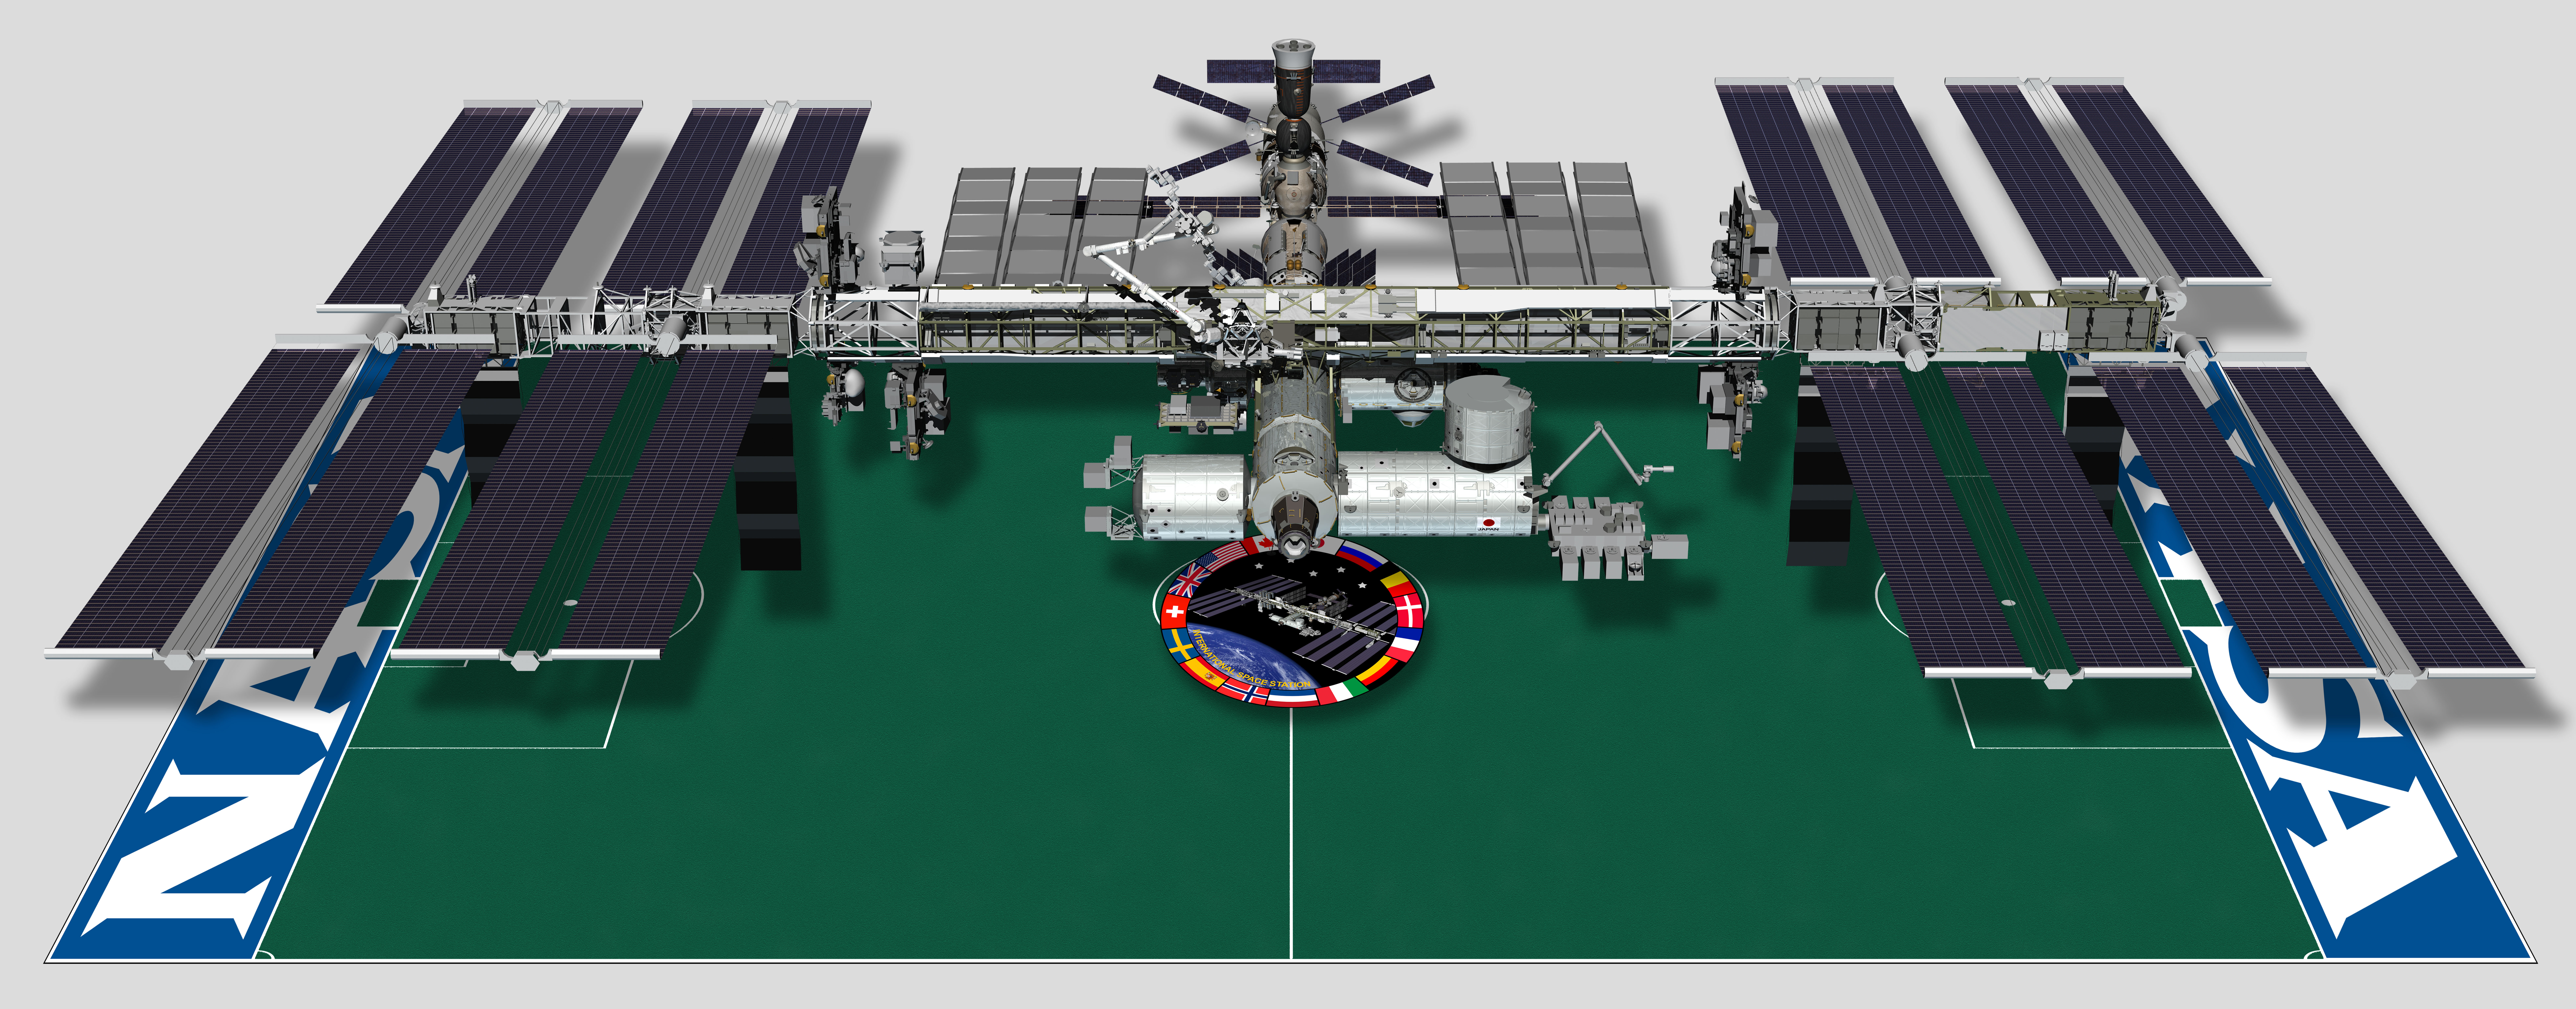 Space Station Size Compared To Soccer Field Nasa